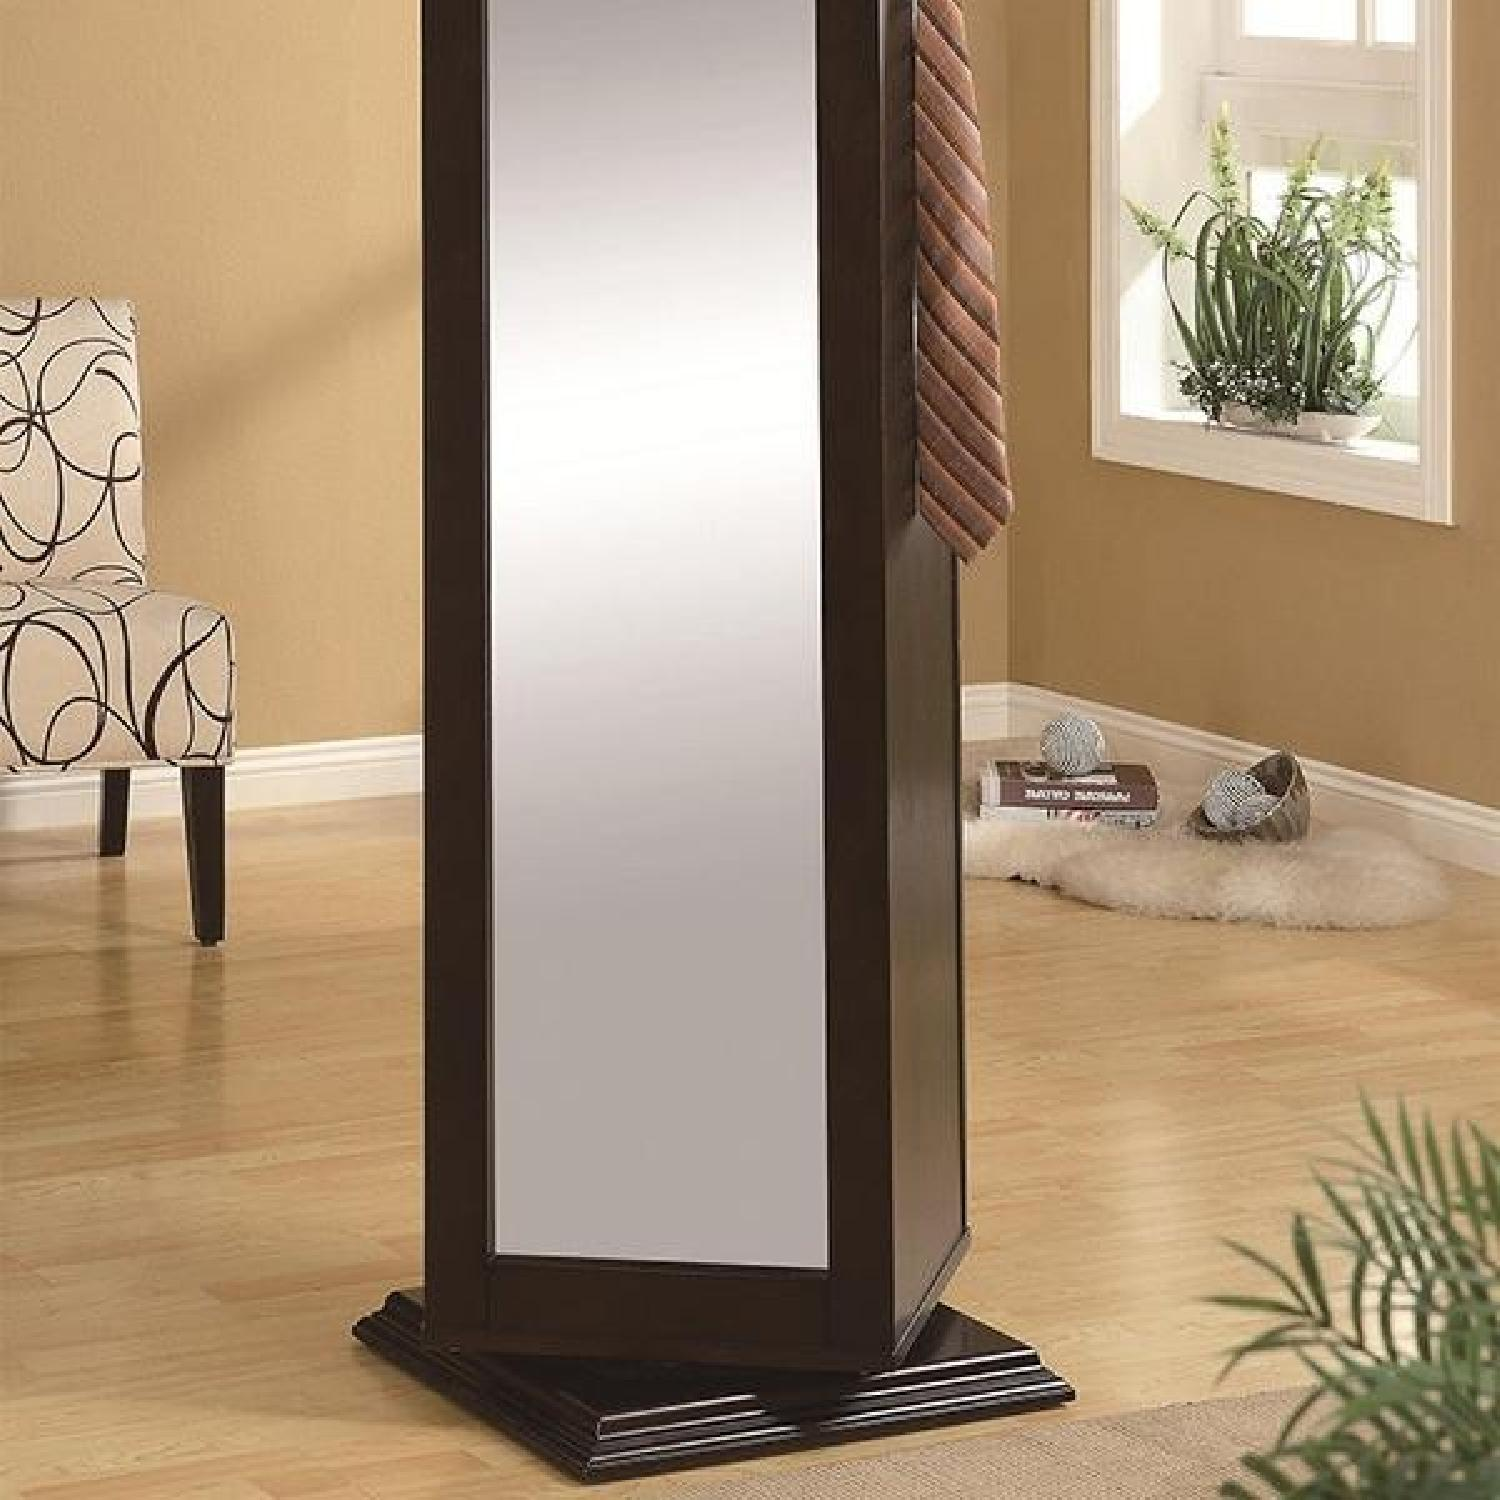 Swivel Cabinet w/ Mirror & Nailboard in Black Finish - image-1